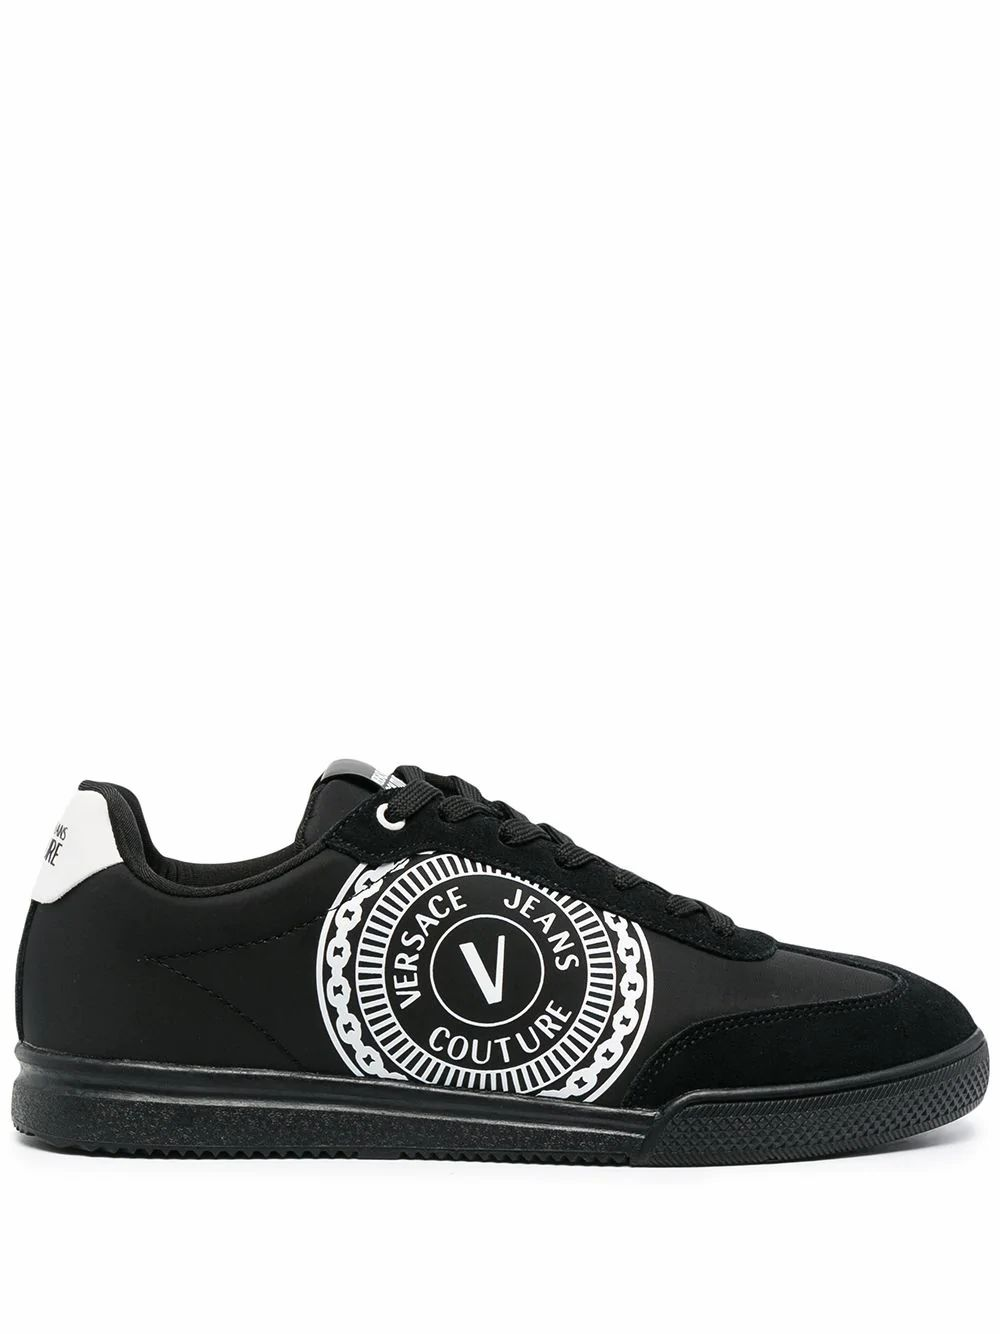 Versace Jeans Couture Low tops VERSACE JEANS MEN'S E0YWASO271942899 BLACK POLYESTER SNEAKERS